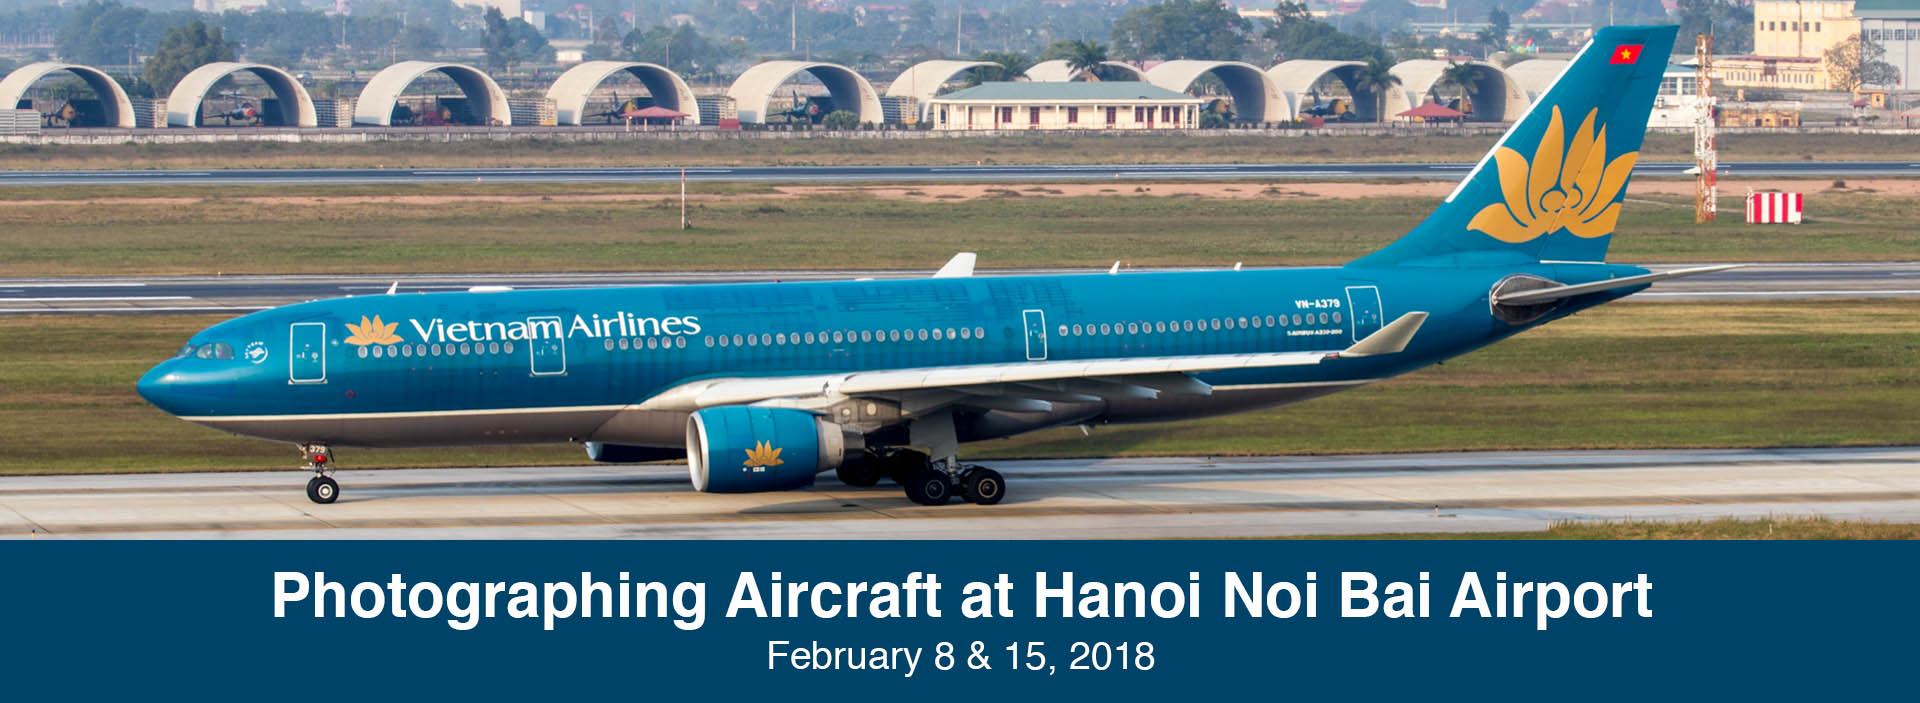 Spotting Report & Guide: Photographing Aircraft from Hanoi Noi Bai Airport Terminal